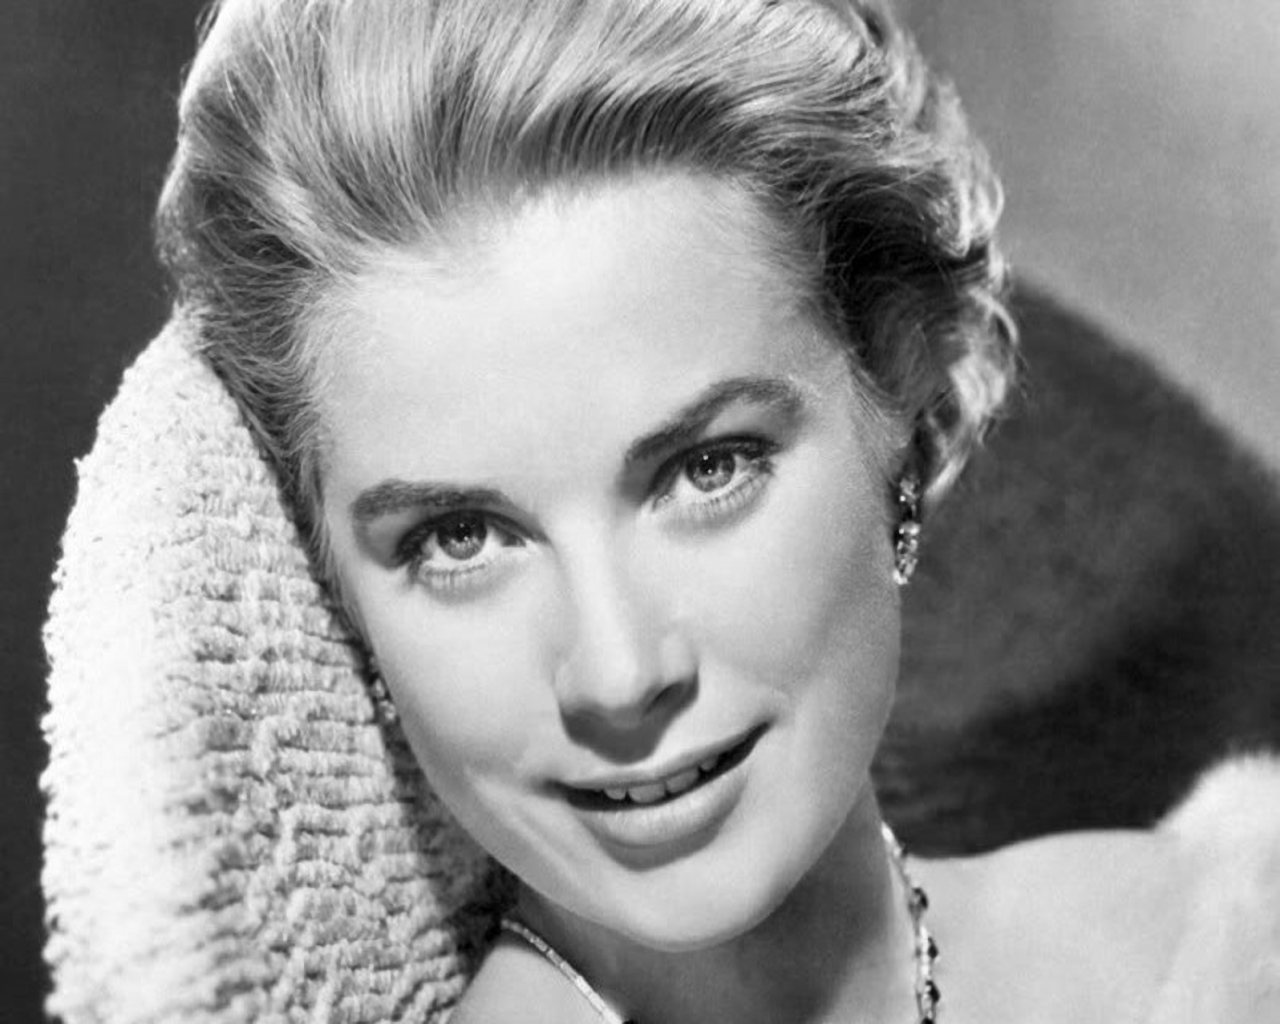 Ingrid Bergman 1280x1024 Wallpapers 1280x1024 Wallpapers Pictures 1280x1024